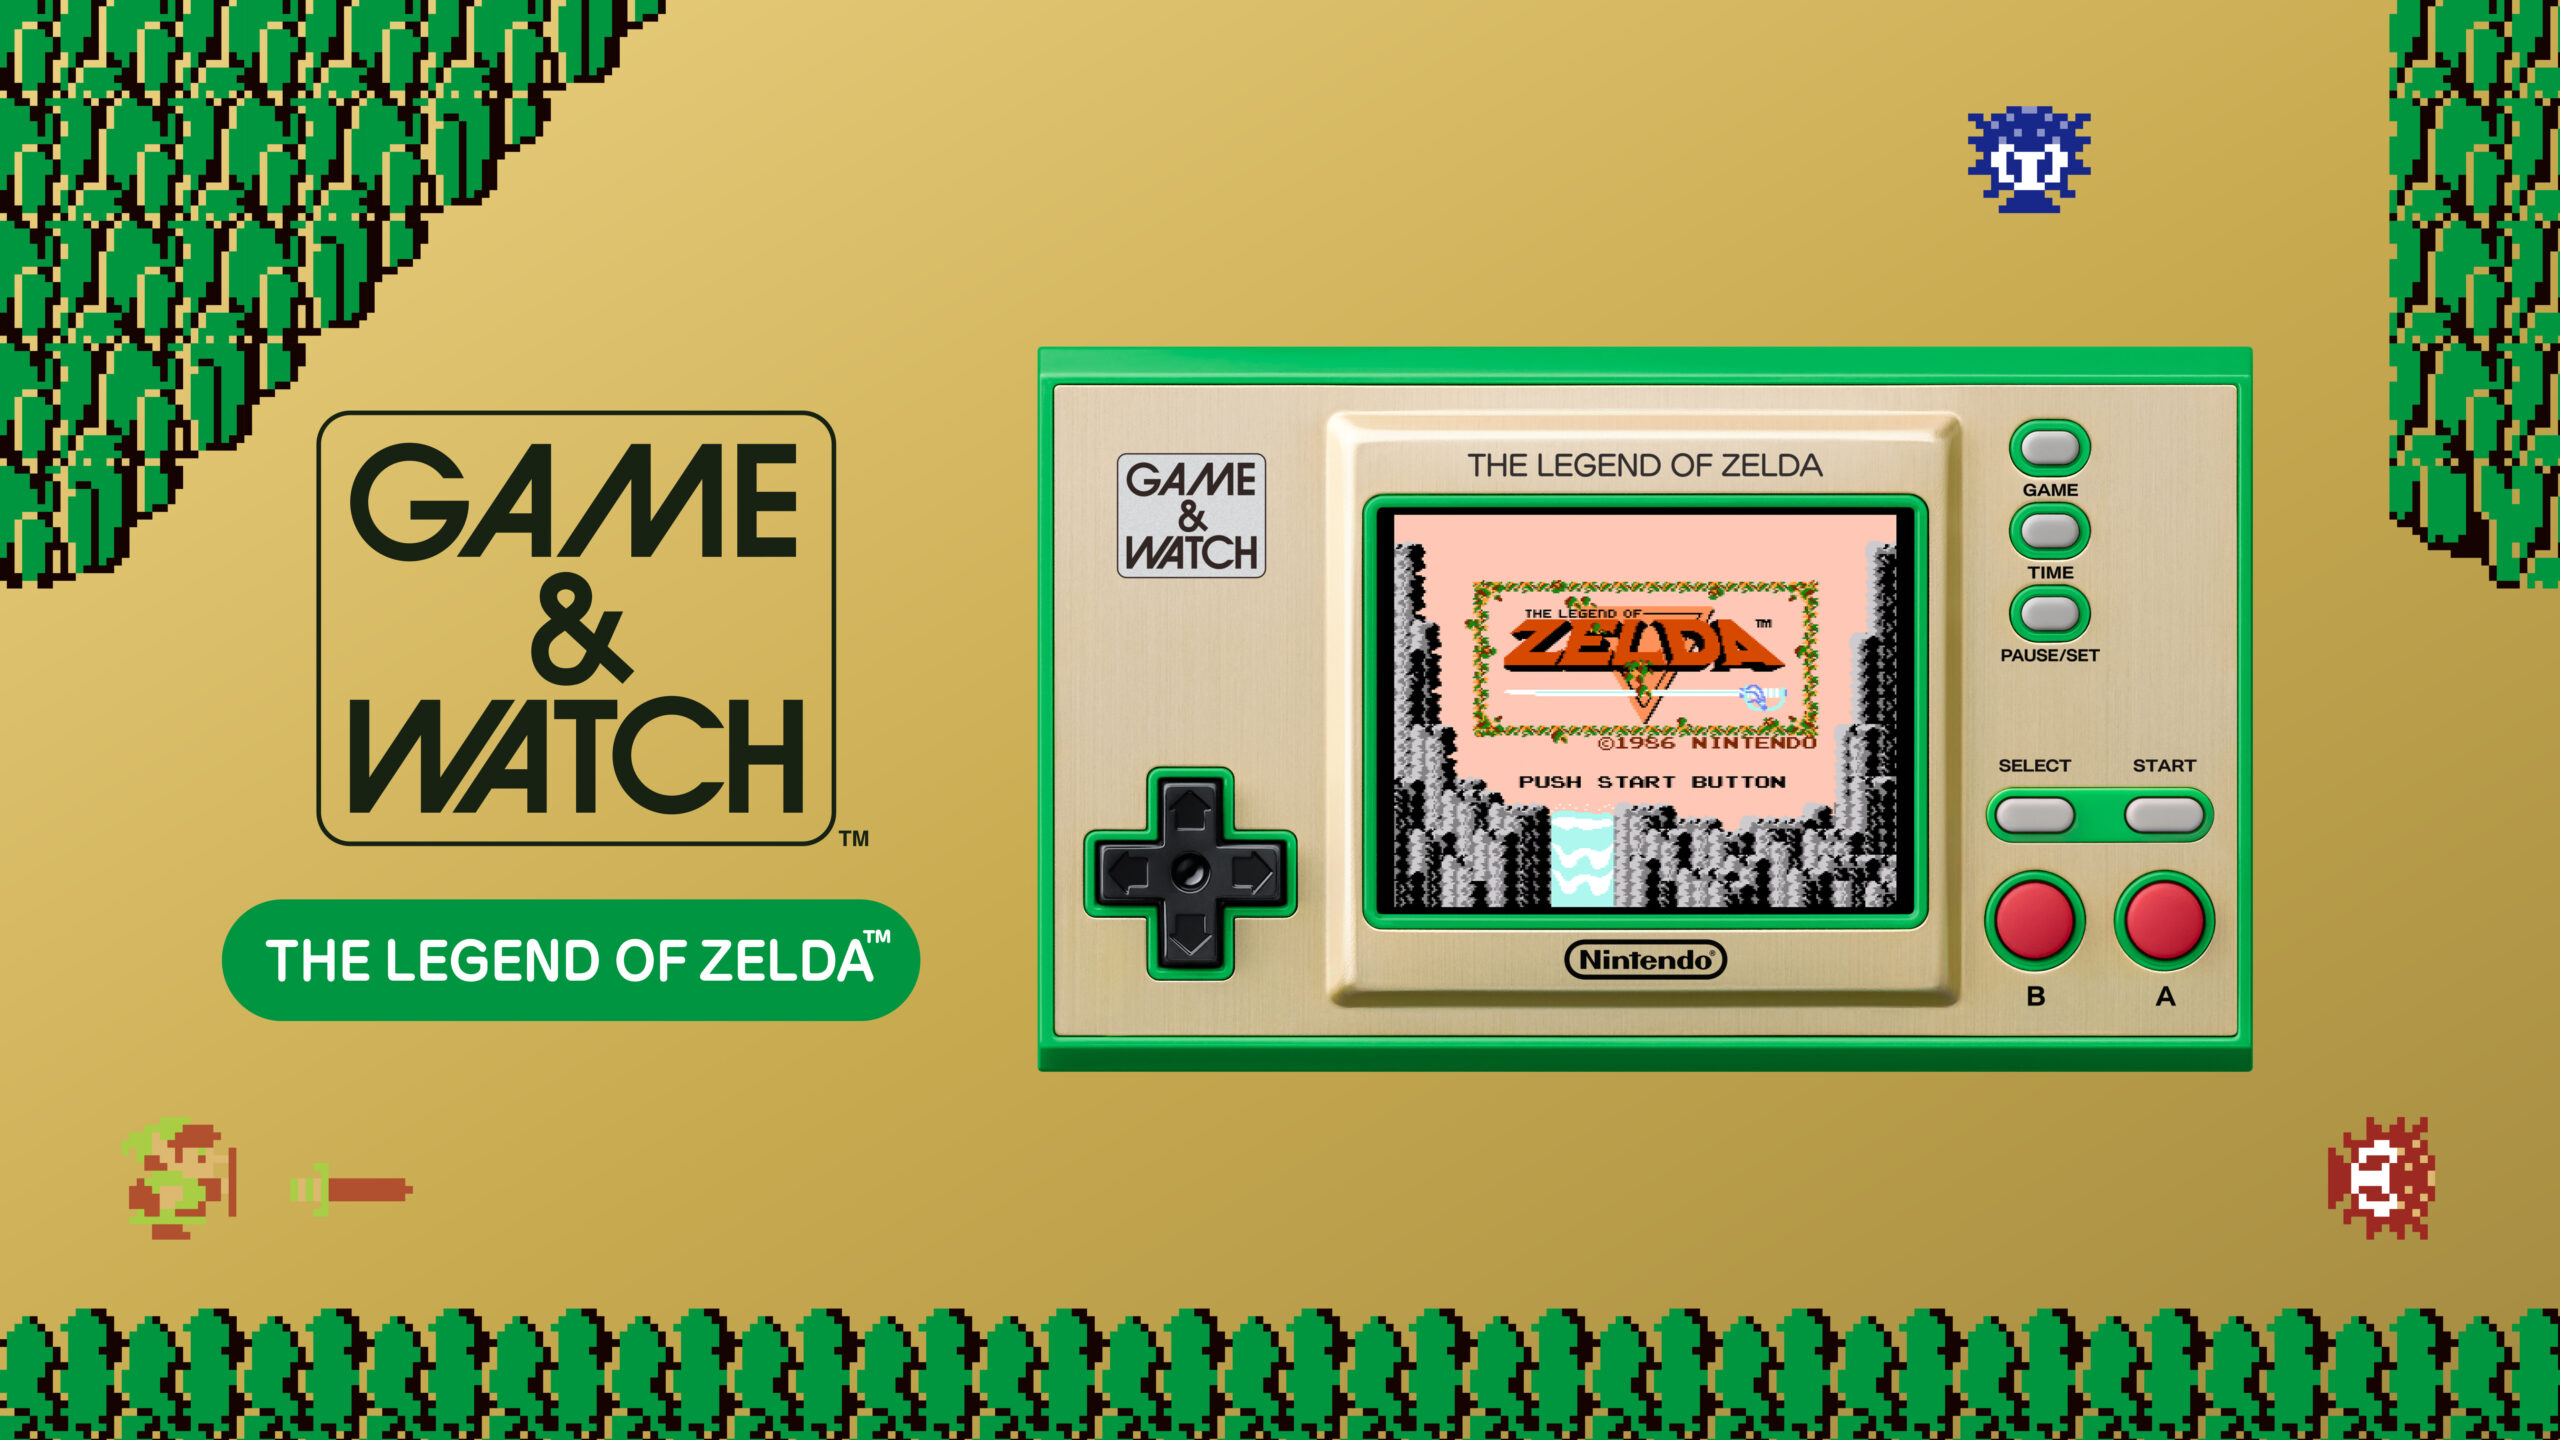 Game and Watch The Legend of Zelda 2021 06 15 21 001 scaled